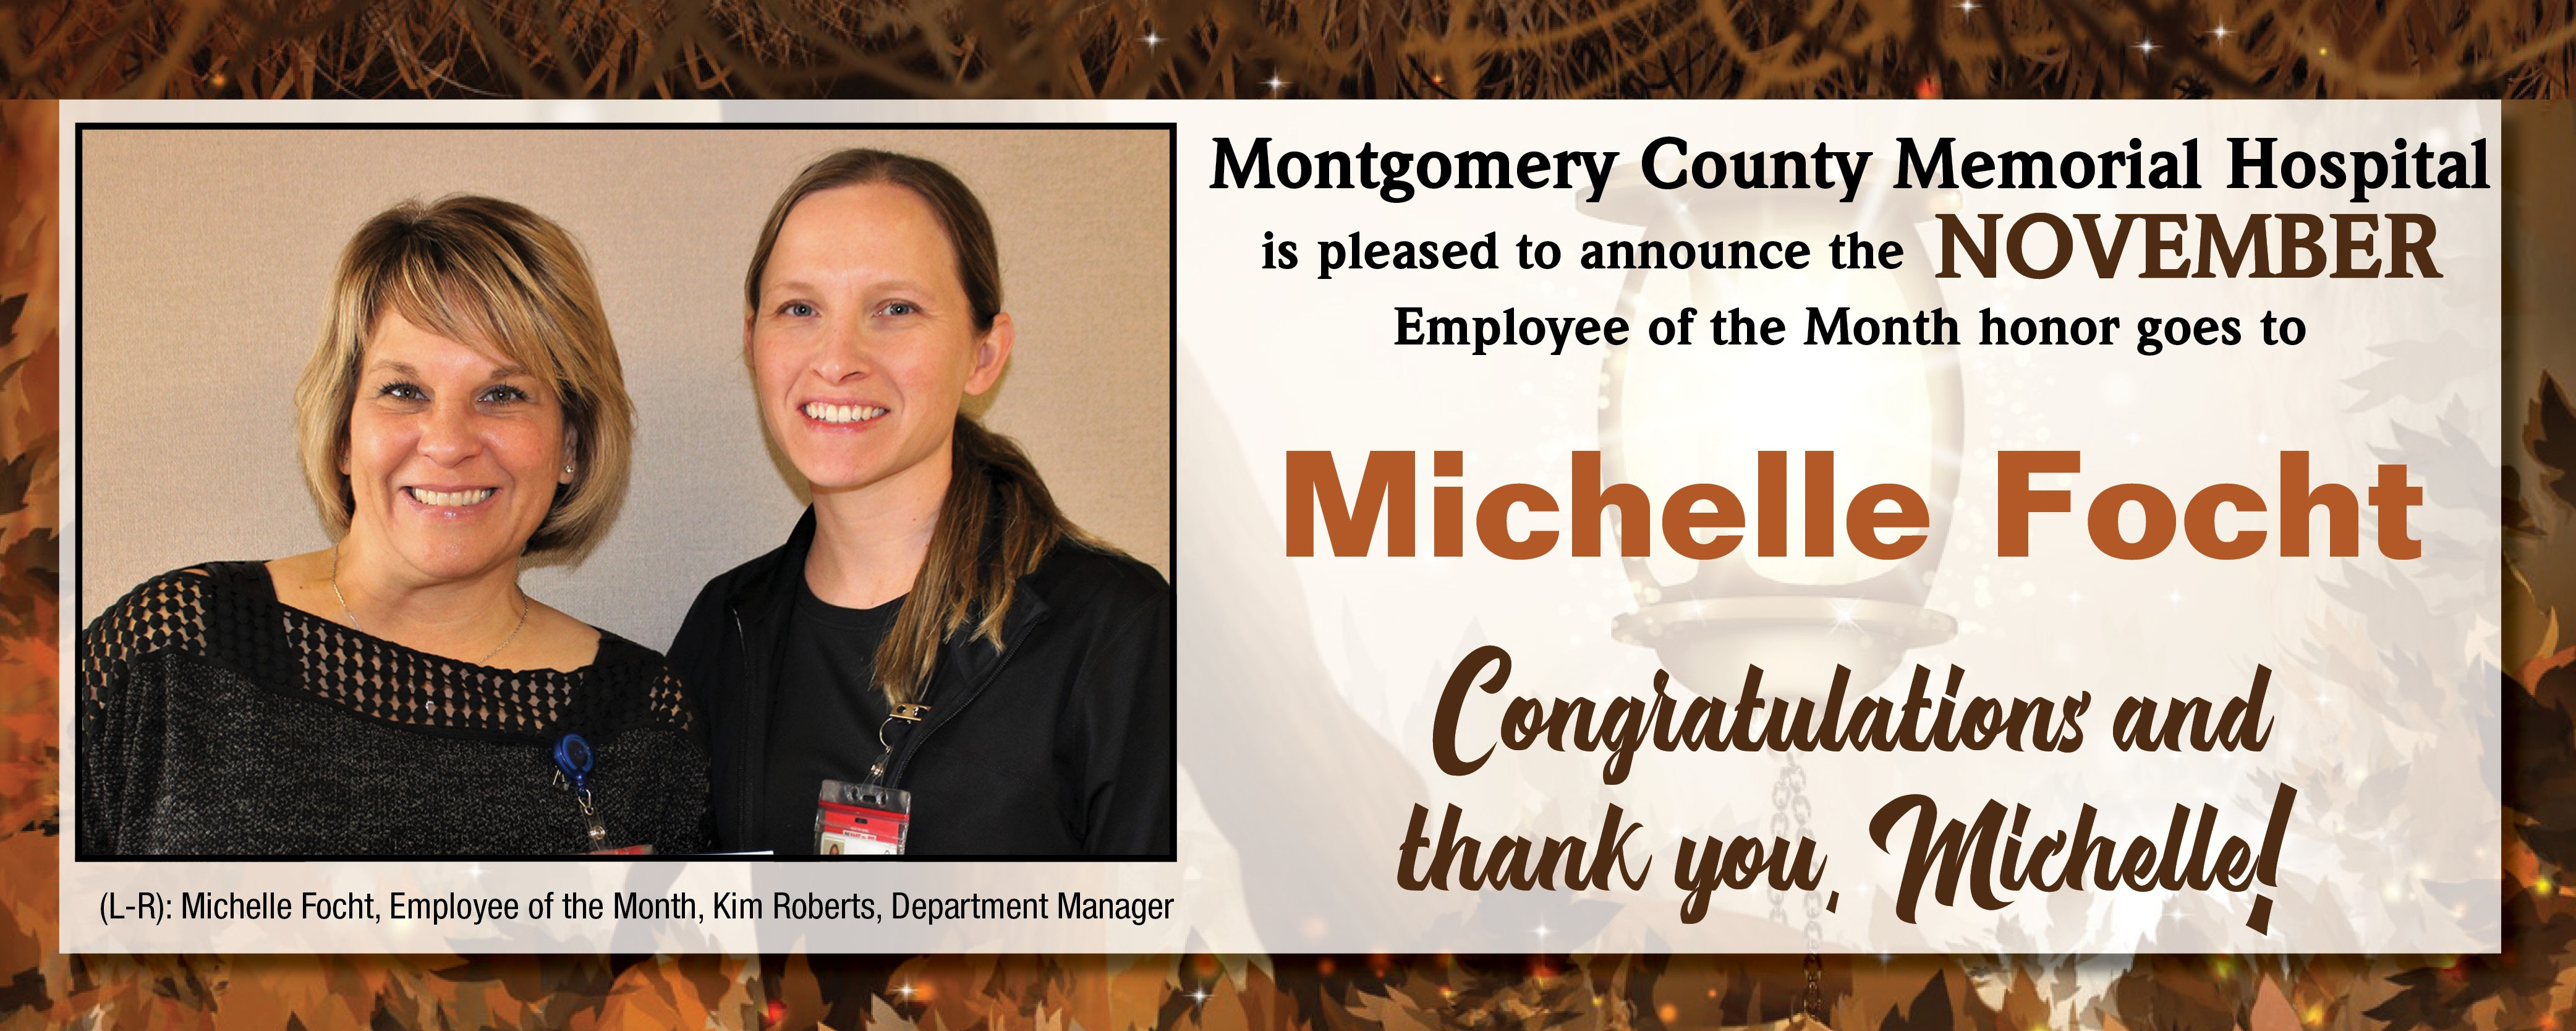 November Employee of the Month, Michelle Focht